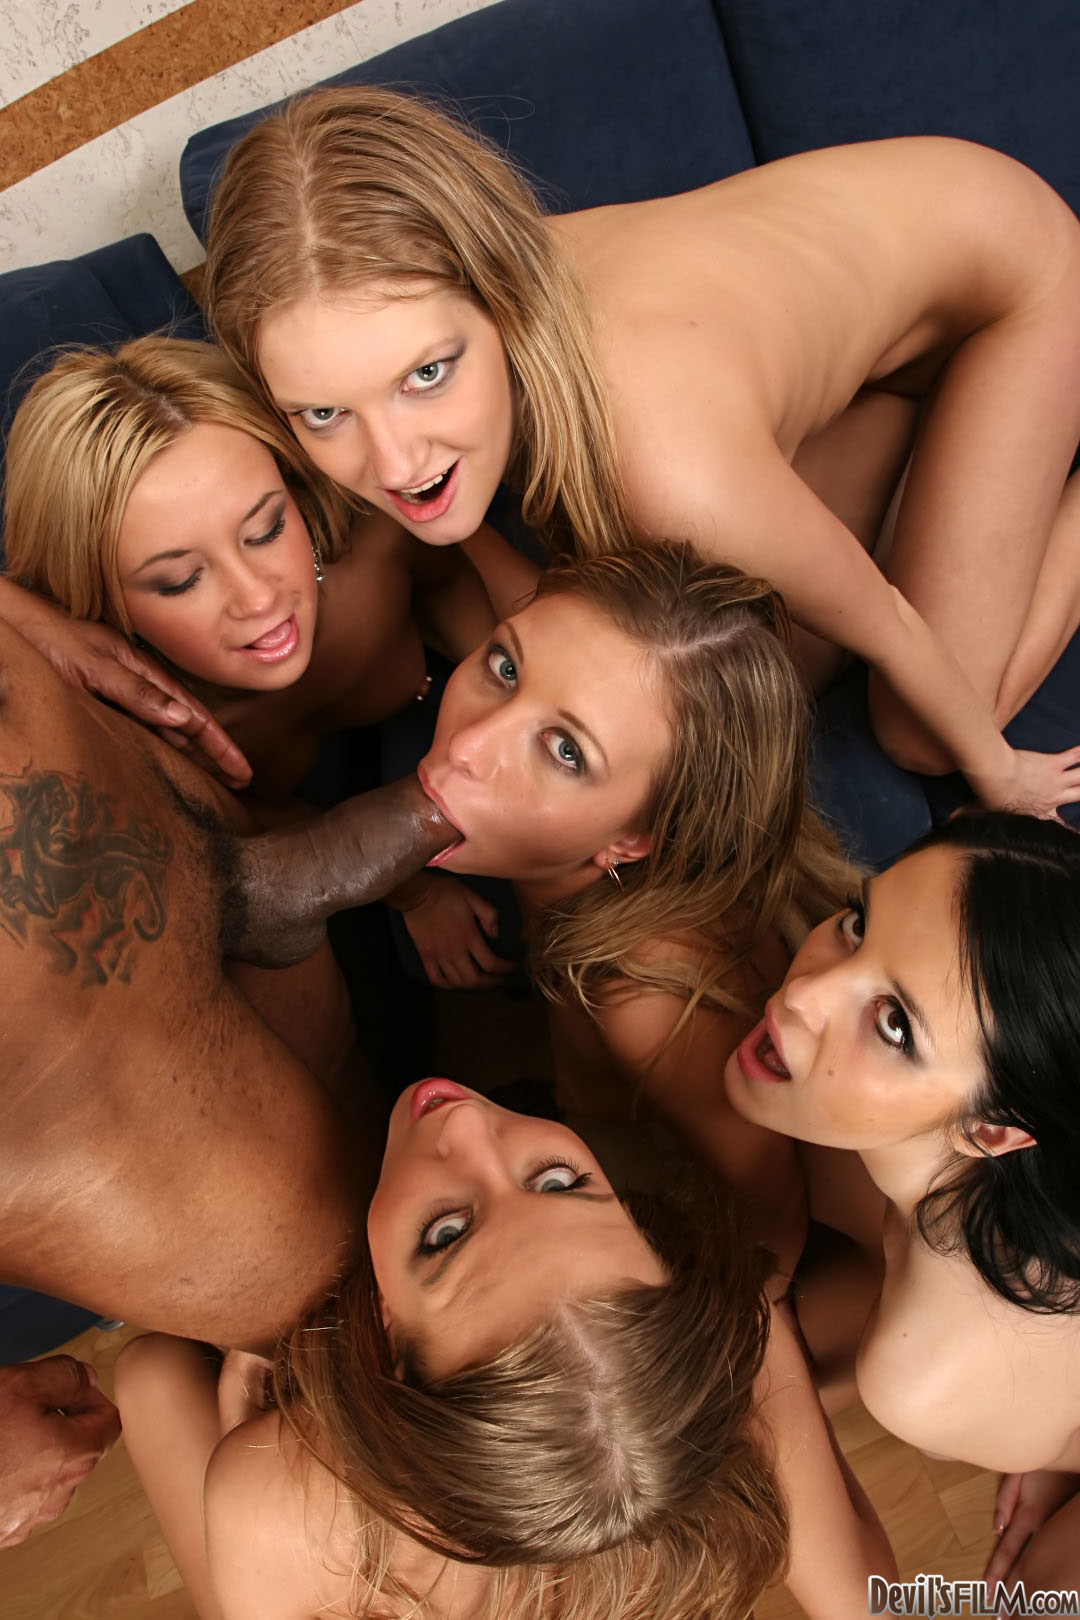 Orsolya, Clarisse And Jessica Road Share A Stud For A Reverse Gangbang